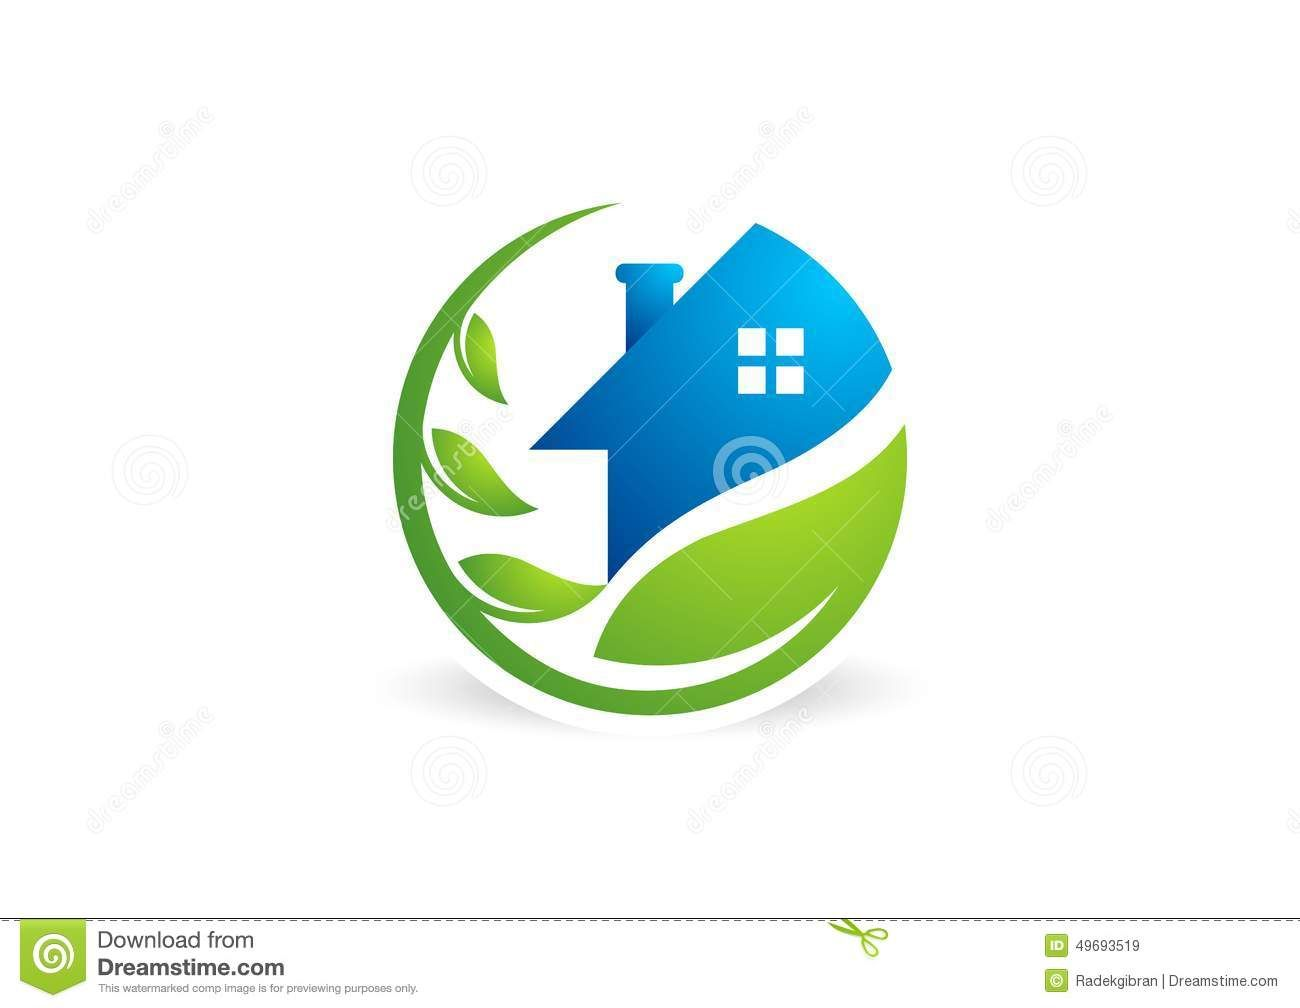 Home, house, real estate, logo, circle building, architecture ...